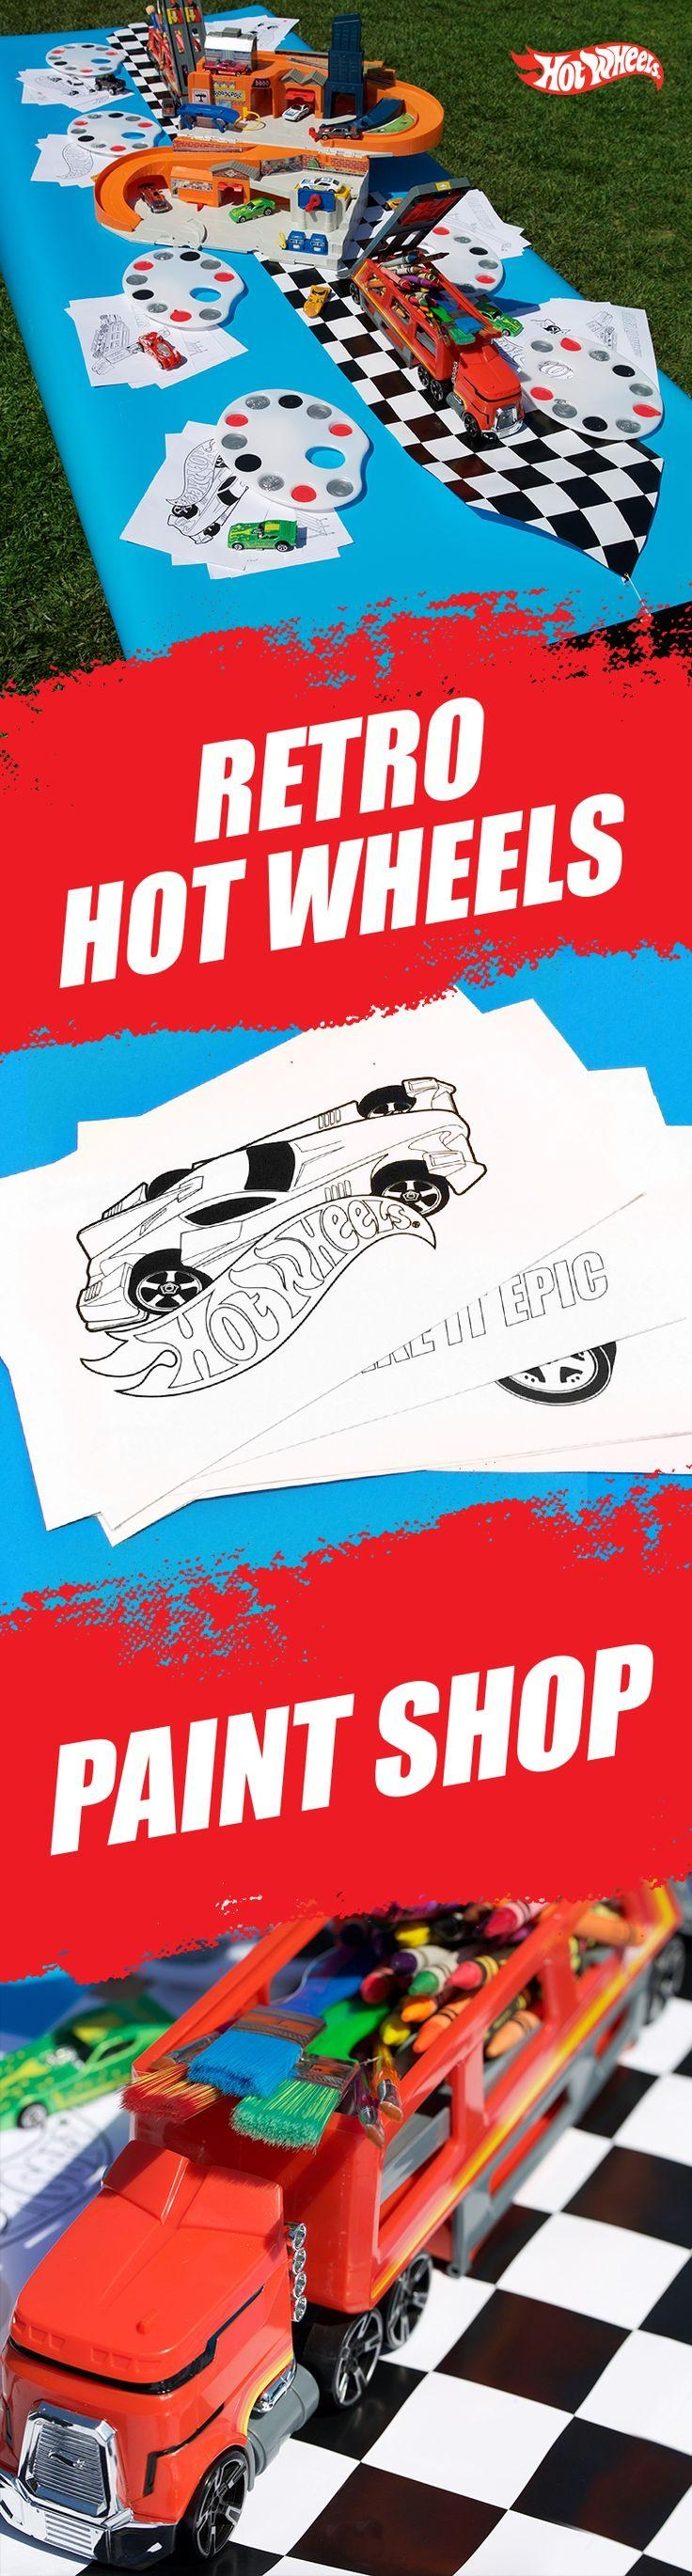 200 Best Fast, Fun Arts & Crafts Images On Pinterest | Kids Crafts Pertaining To Hot Wheels Wall Art (Image 3 of 20)